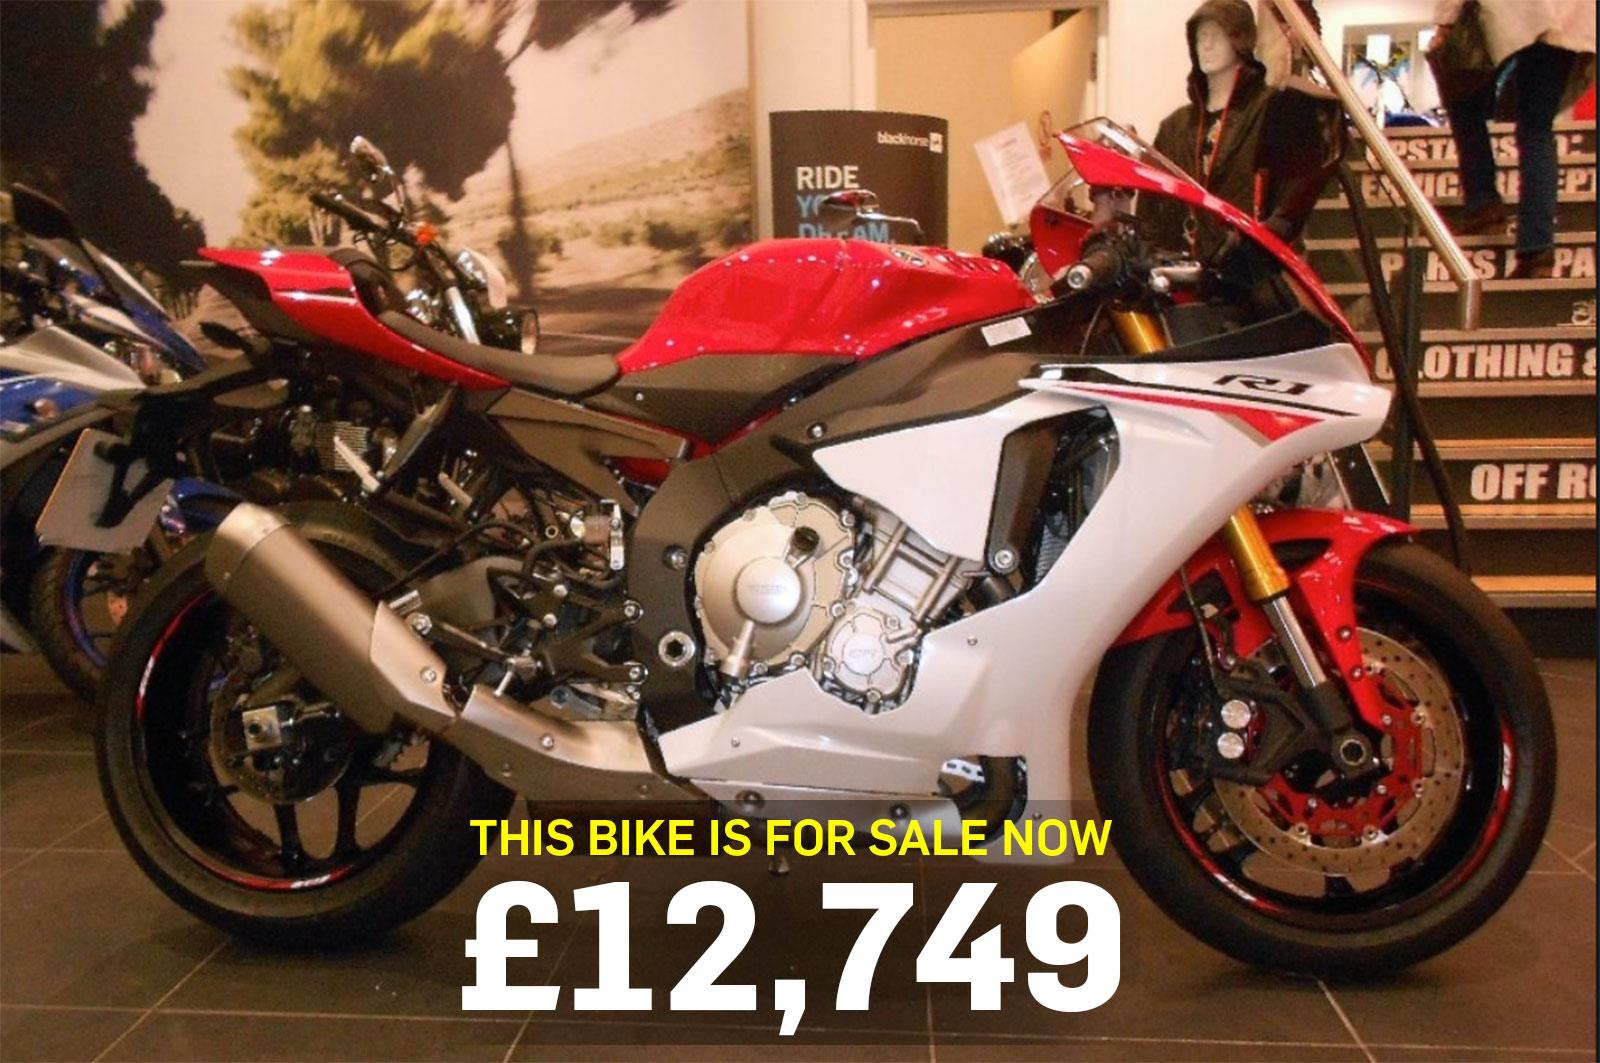 2012 yamaha yzf r6 reviews prices and specs review ebooks - Bike Of The Day Yamaha R1